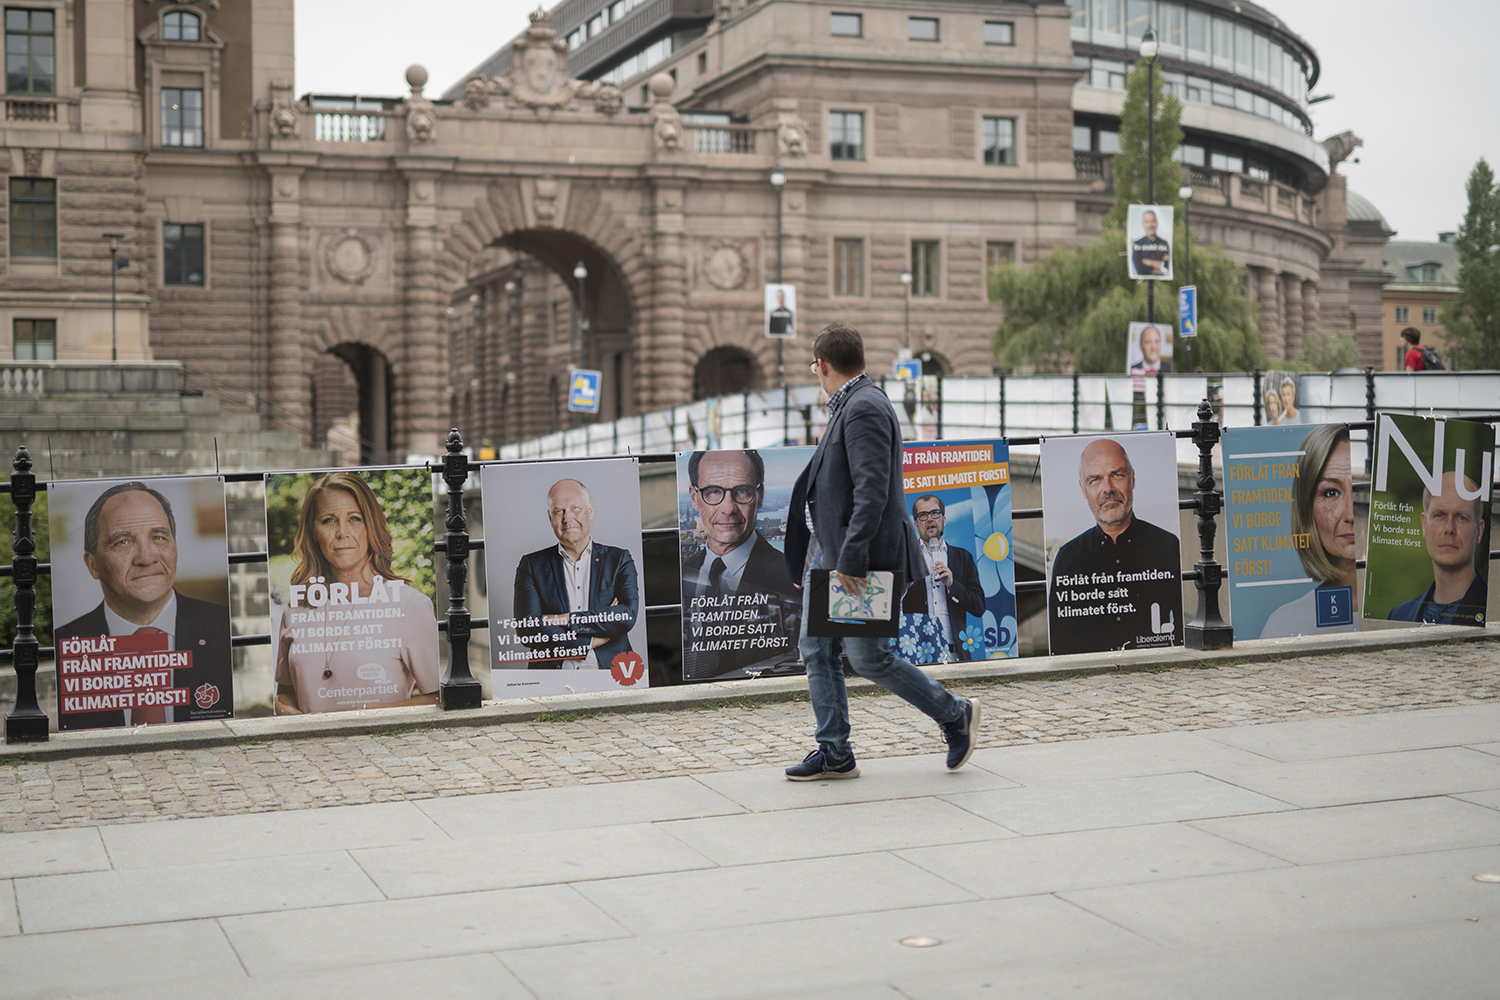 Art direction and manipulation of images for fake election posters of the eight parliamentary parties in Sweden before the election in September 2018. The party leaders where made to look older and apologised from the future, that they didn't act earlier with the climate issues before it was too late. The images were printed as usual election posters and deployed in Stockholm the week before the election.